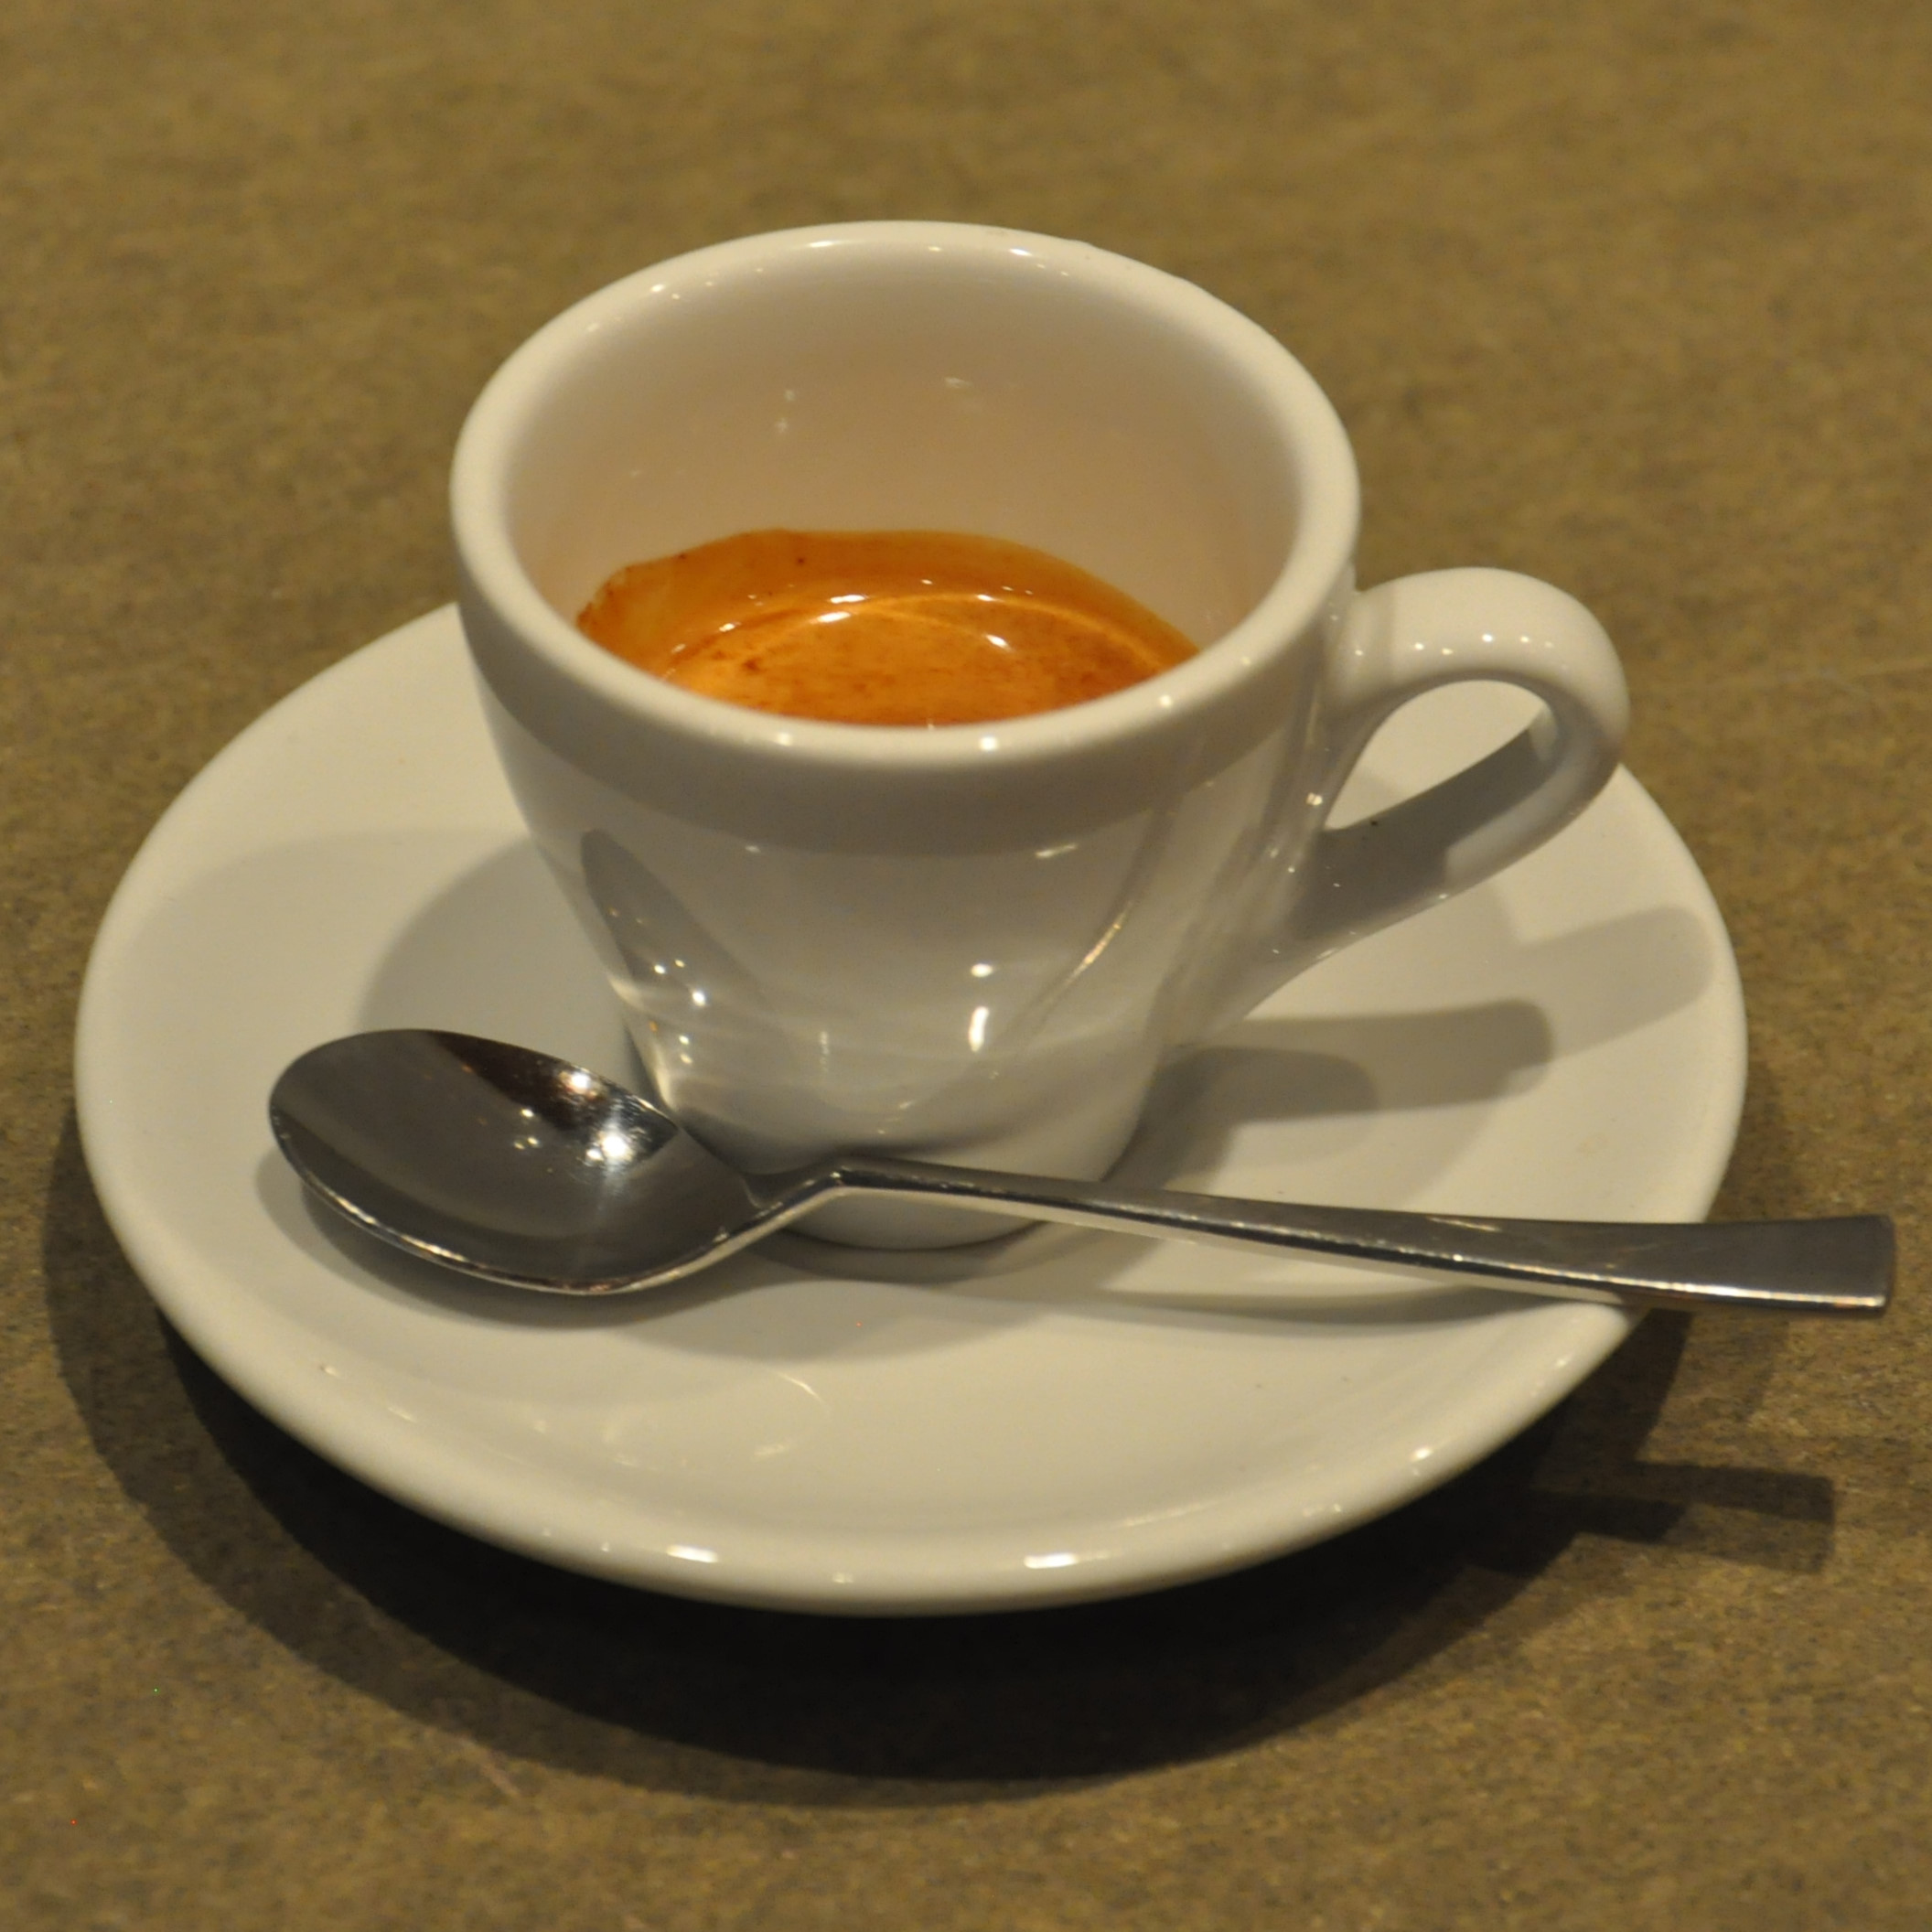 AA lovely single-origin Rwandan espresso, served in a classic white cup in Sentido Speciality Coffee in Kyoto.